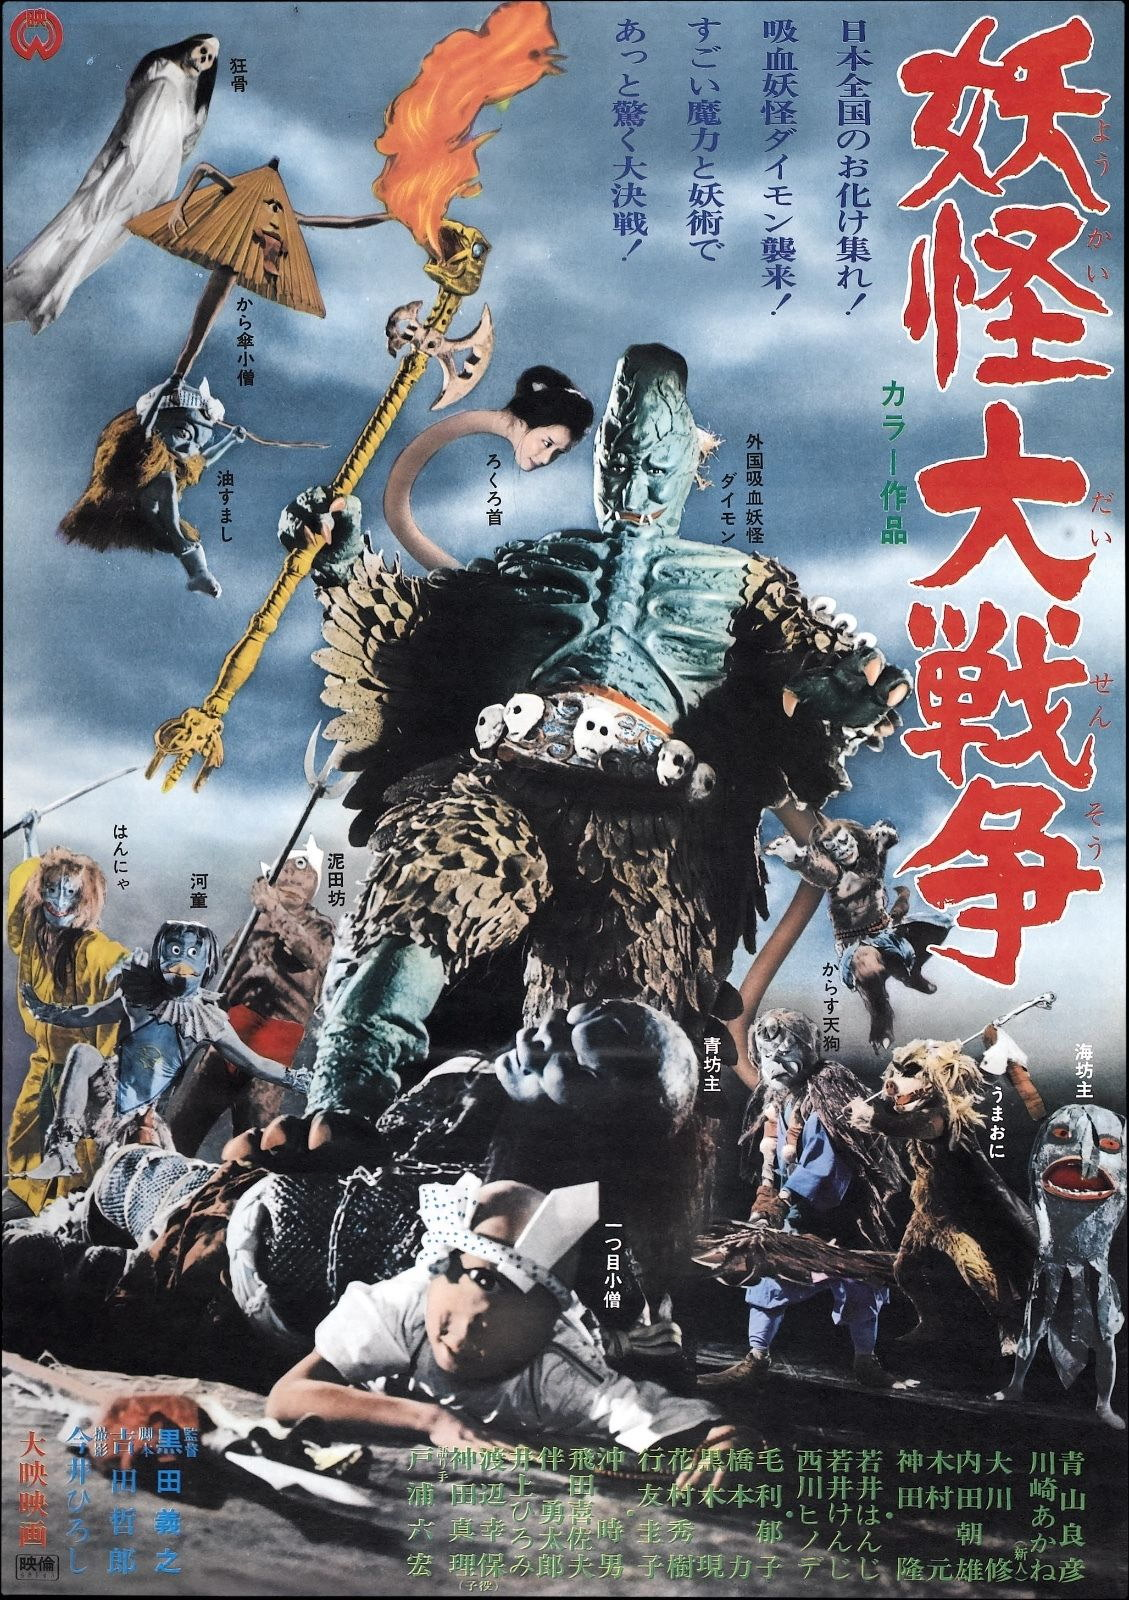 73198-Yokai-Monsters-Spook-Warfare-Fantasy-Adventure-Wall-Print-Poster-Affiche